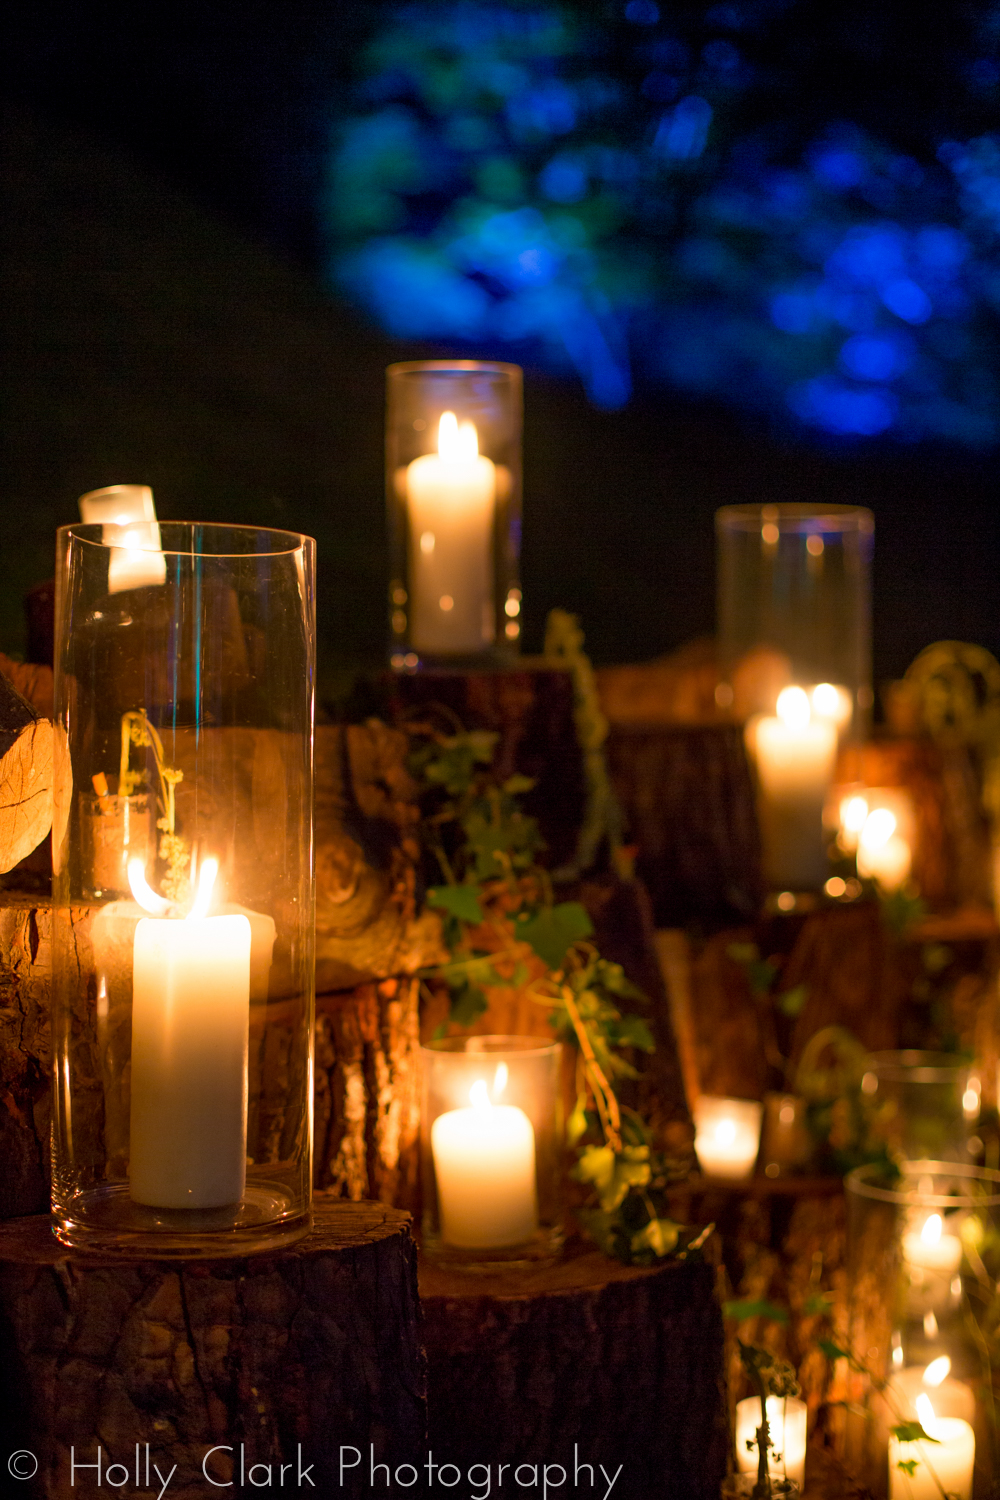 21st birthday party outdoor decor